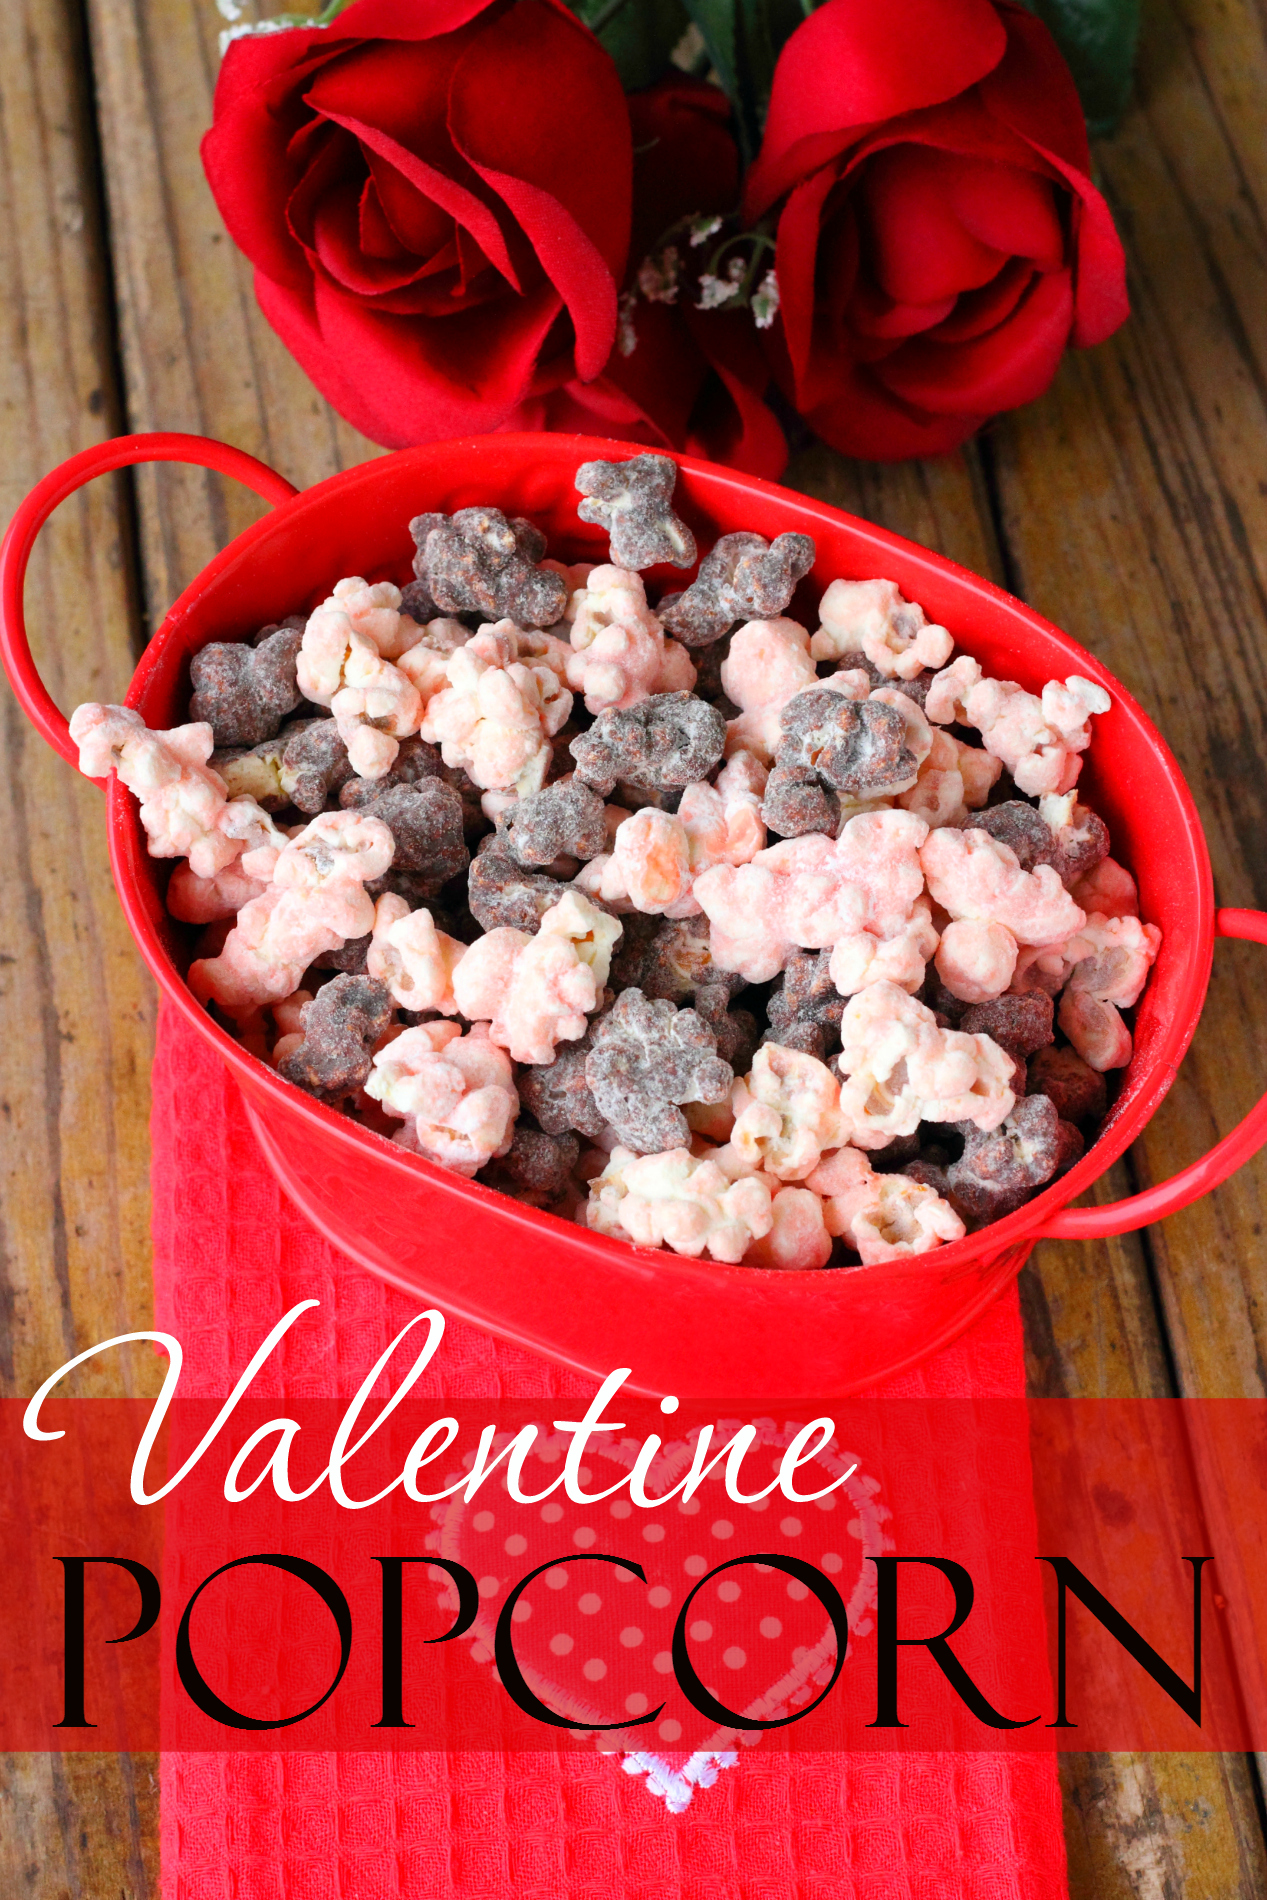 Make your Valentine a sweet treat this Valentine's Day with this delicious and easy-to-make Valentine's Popcorn!